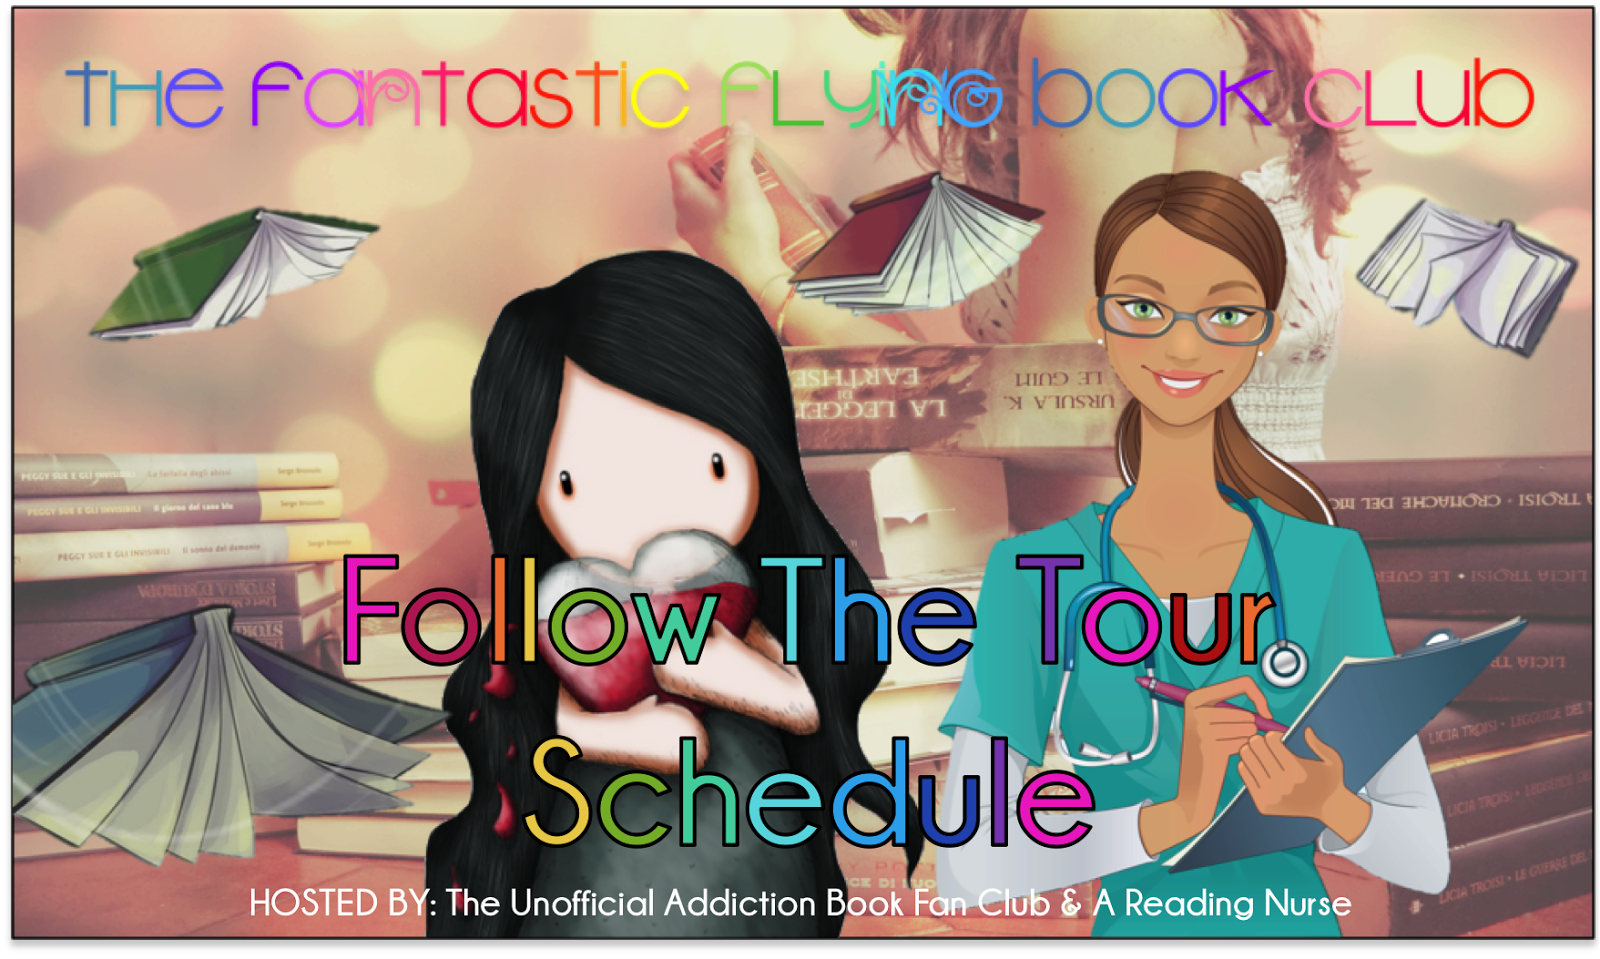 http://theunofficialaddictionbookfanclub.blogspot.com/2014/07/ffbc-blog-tour-17-first-kisses-by.html